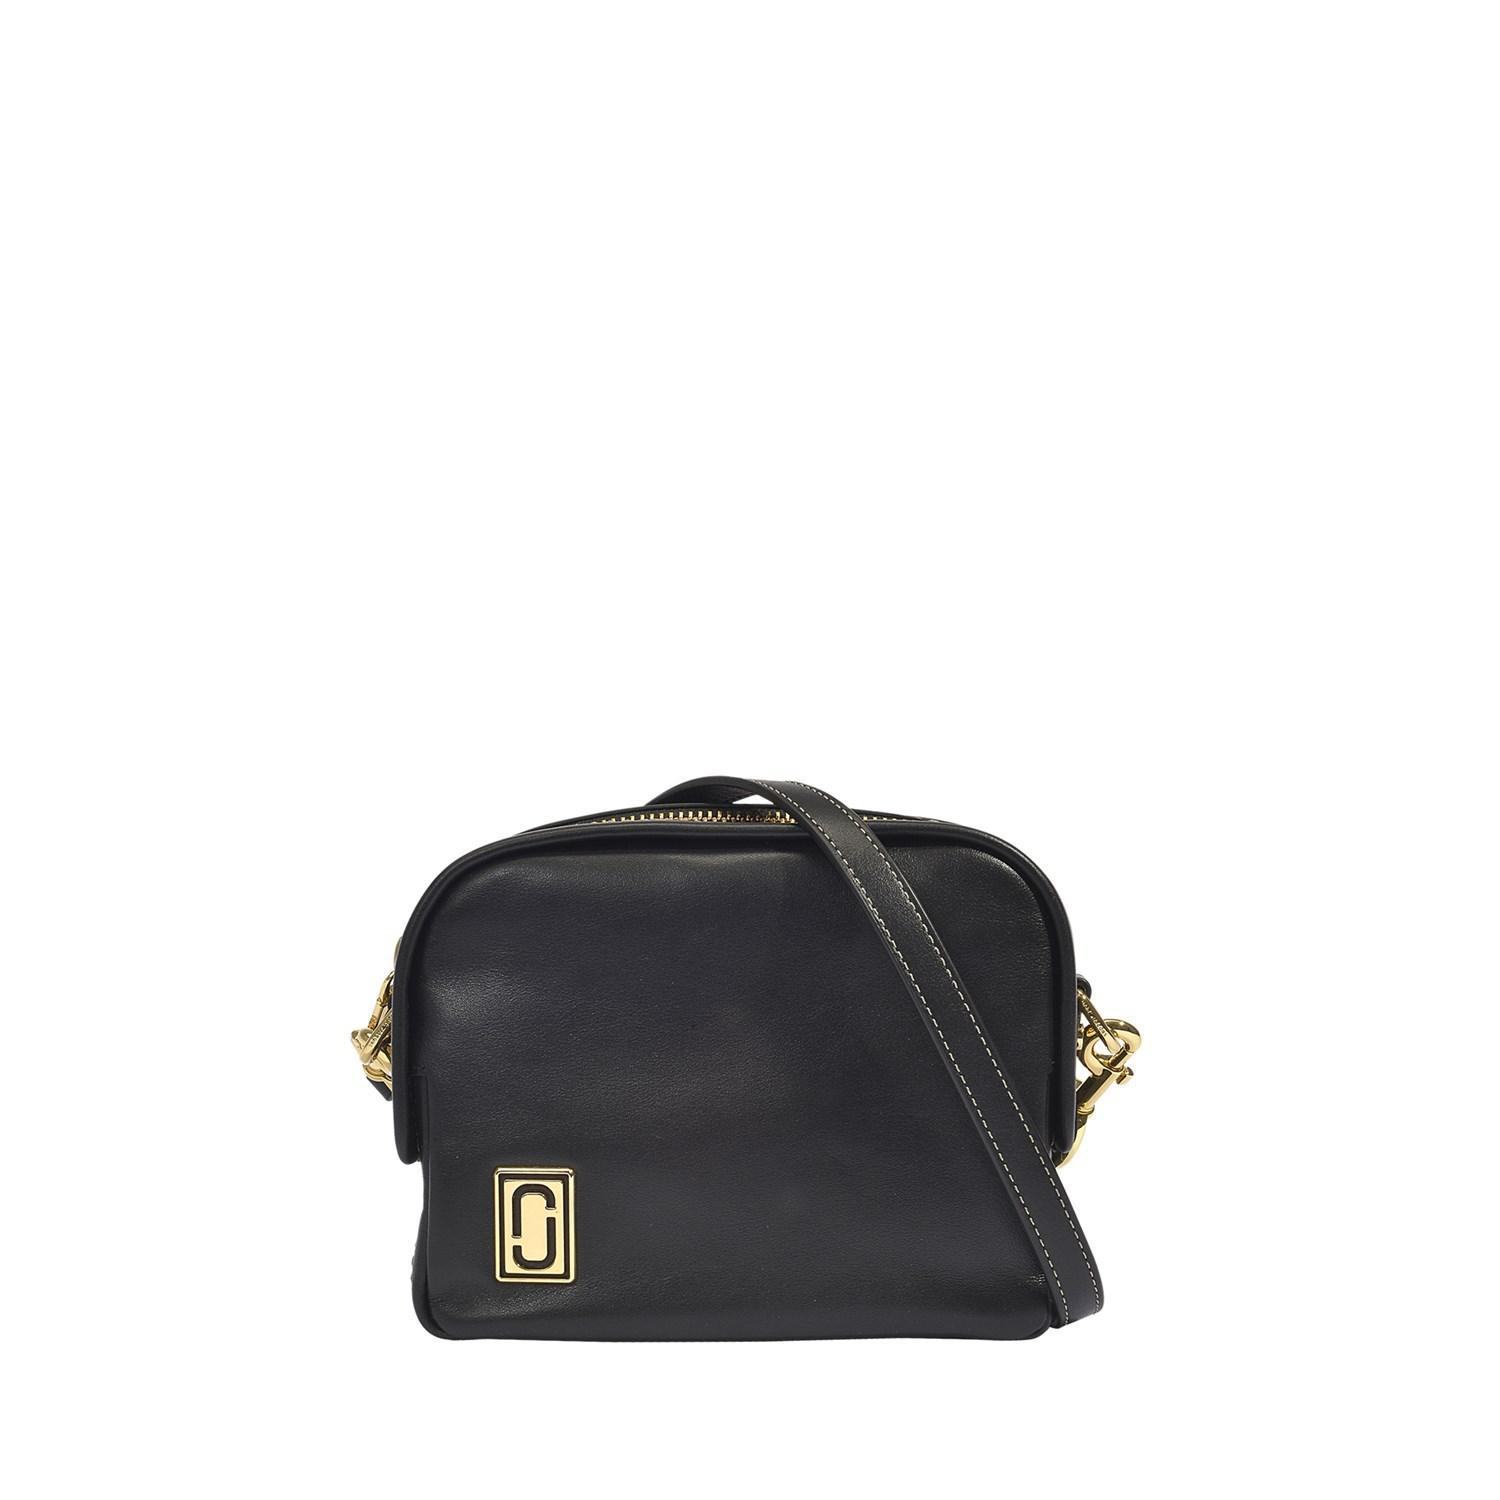 065f5331494b Lyst - Marc Jacobs The Mini Squeeze Bag In Black Calfskin in Black